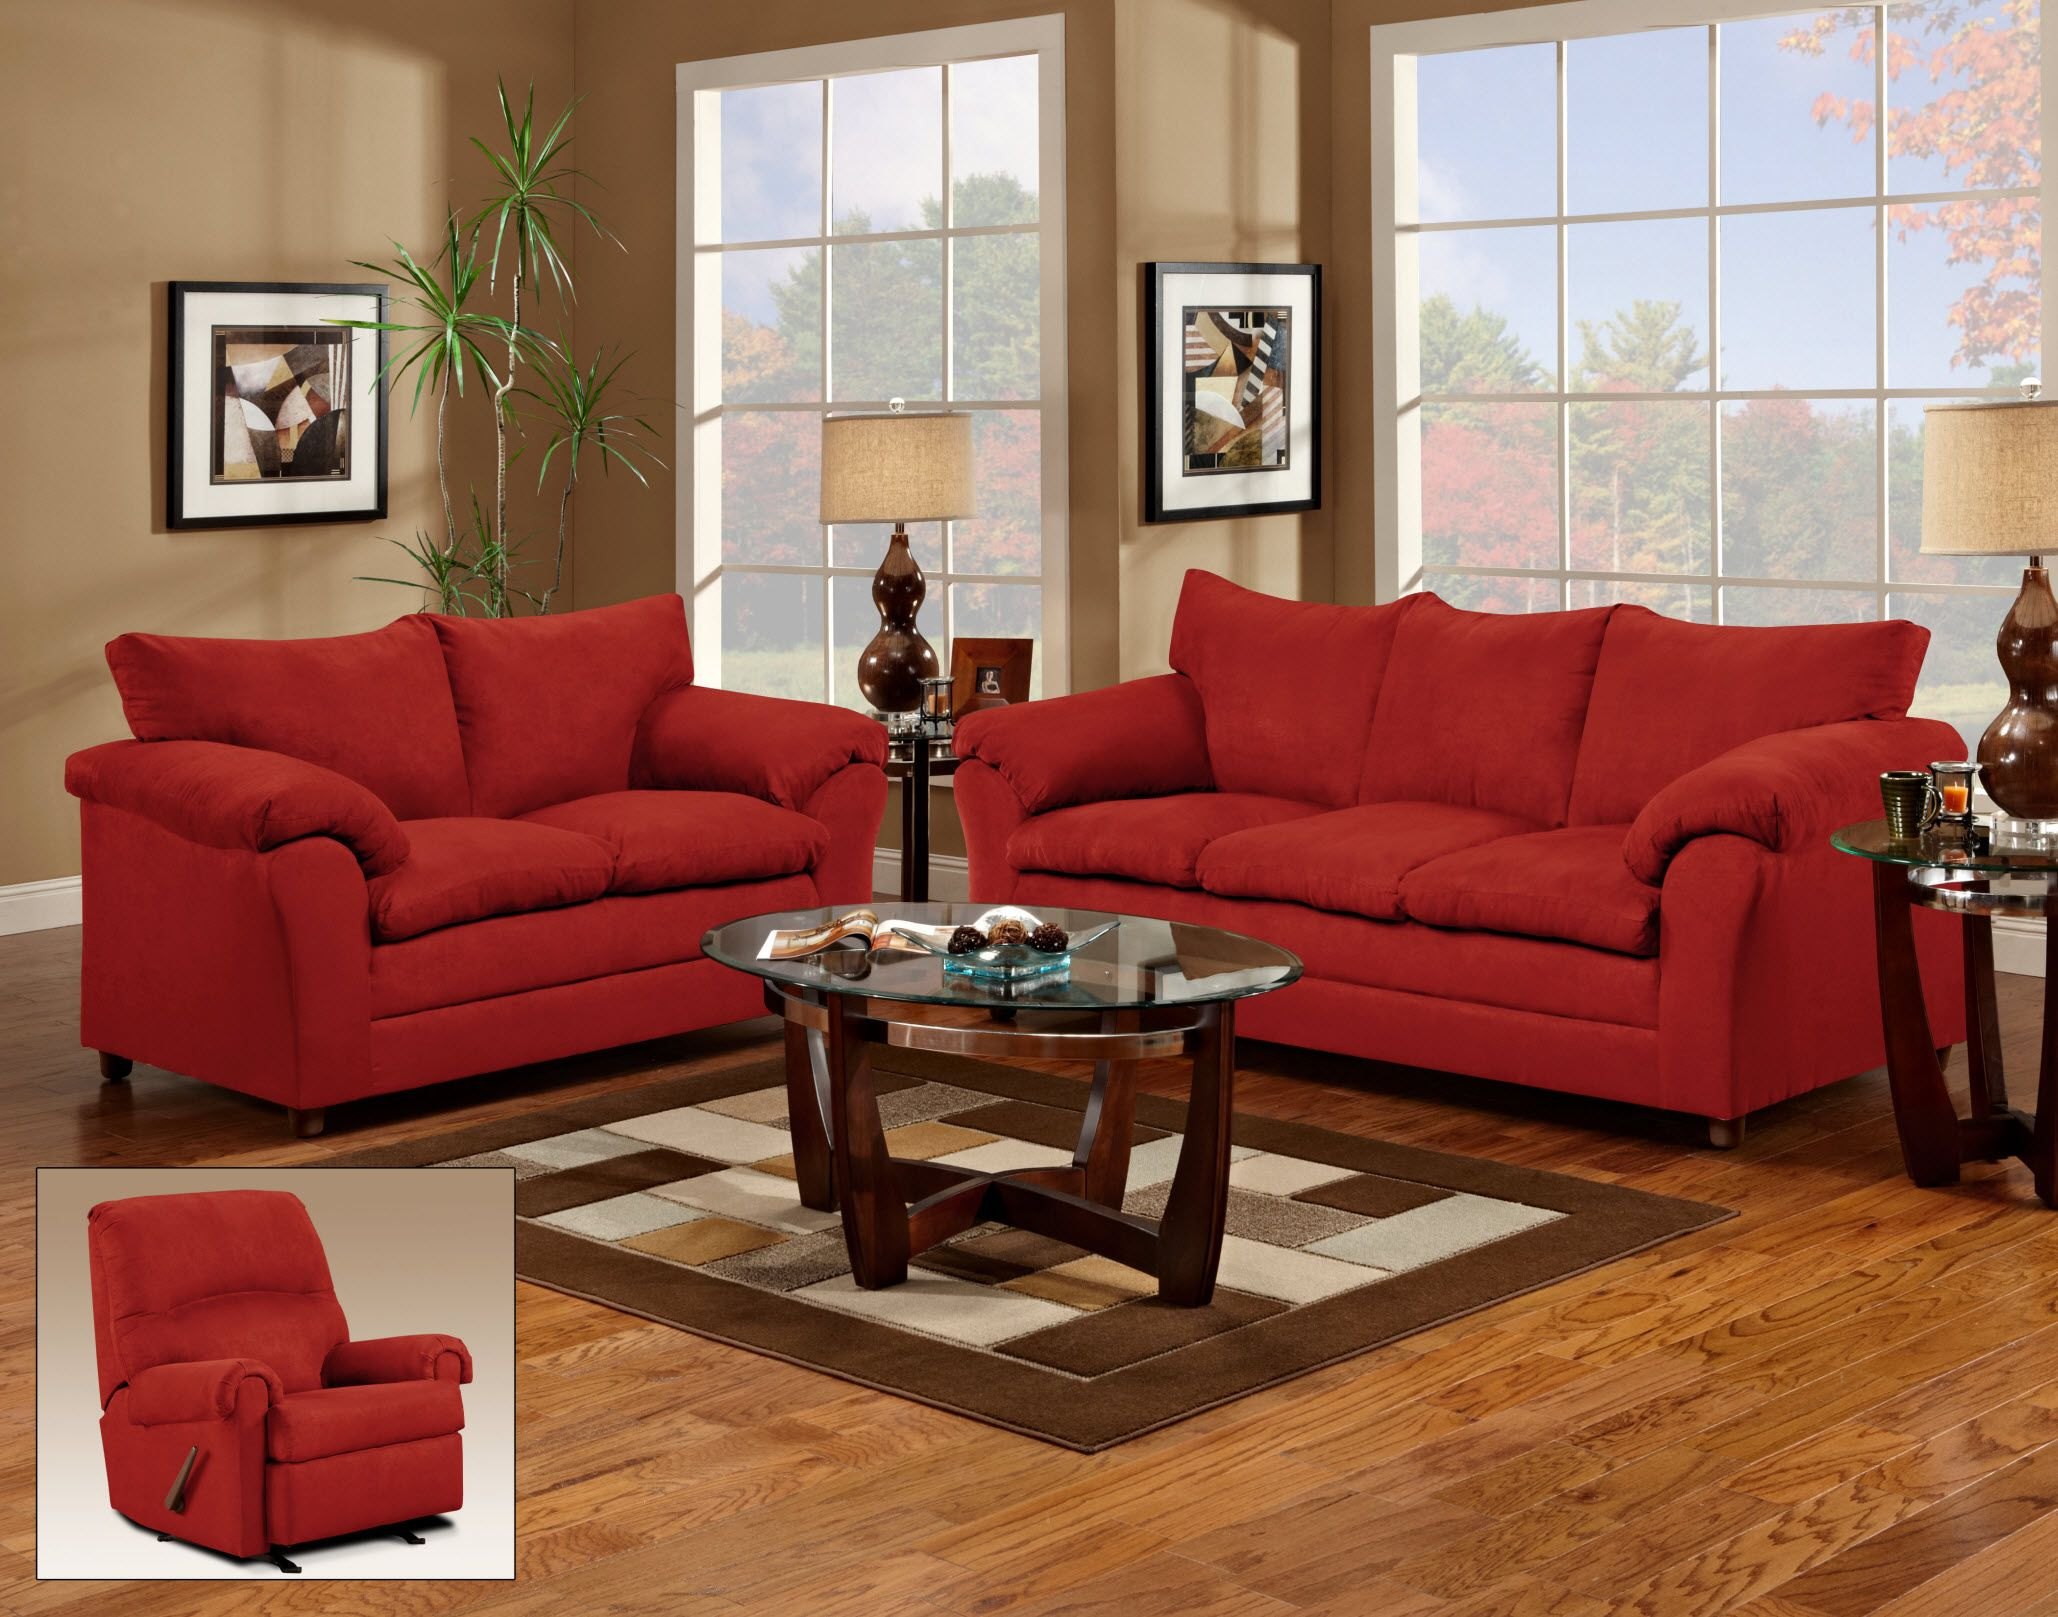 Red couch and loveseat living room for the home Living room ideas with red sofa